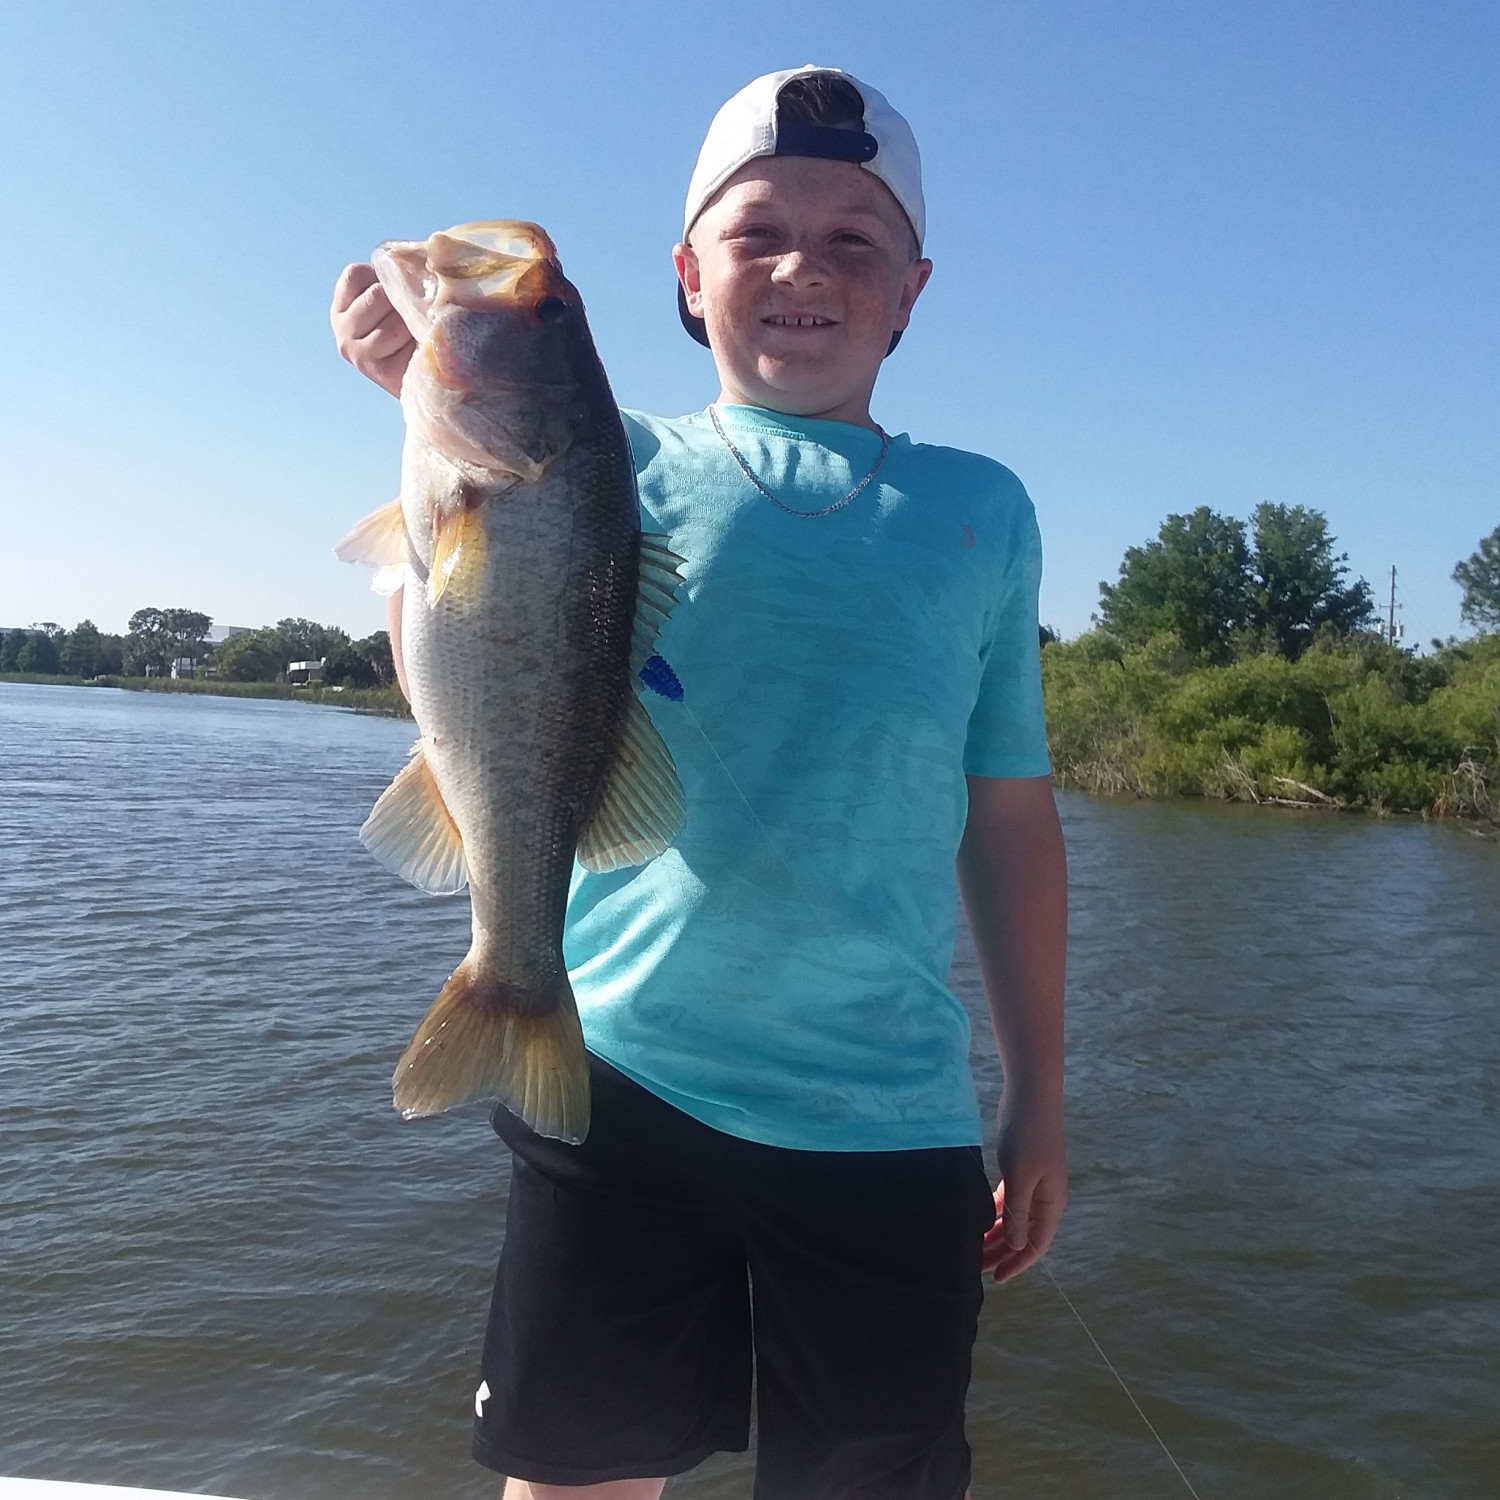 Title: First fish caught on the new boat - On board their Sportsman Island Bay 20 Bay Boat - Location: Sebring, Fl. Participating in the Photo Contest #SportsmanMay2018